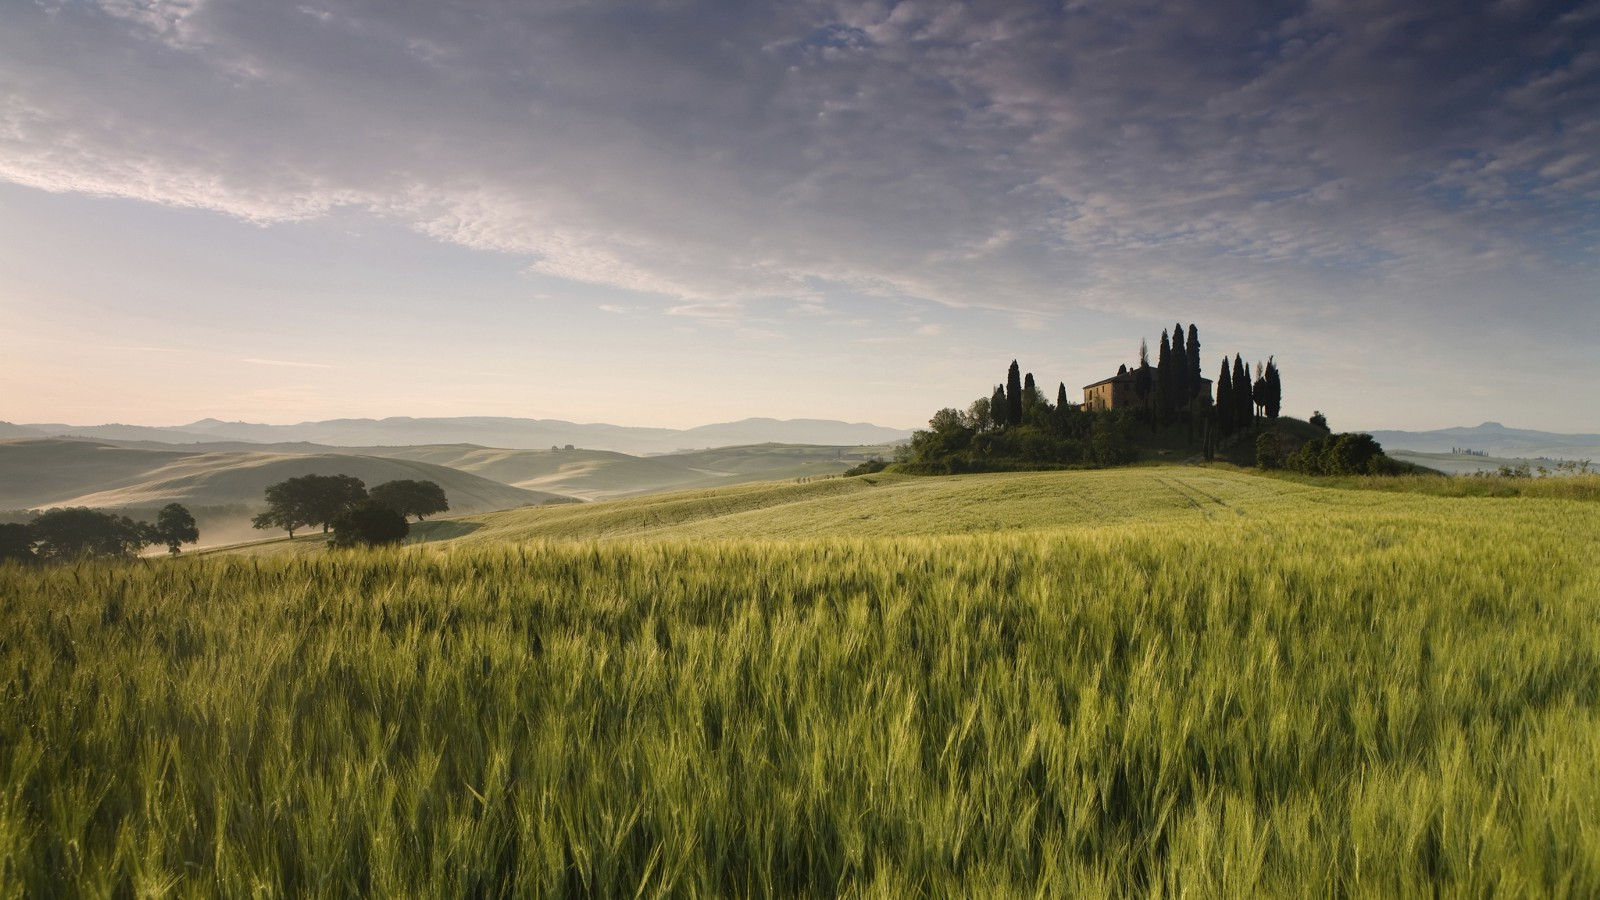 Val d'Orcia in the Tuscany region of Italy